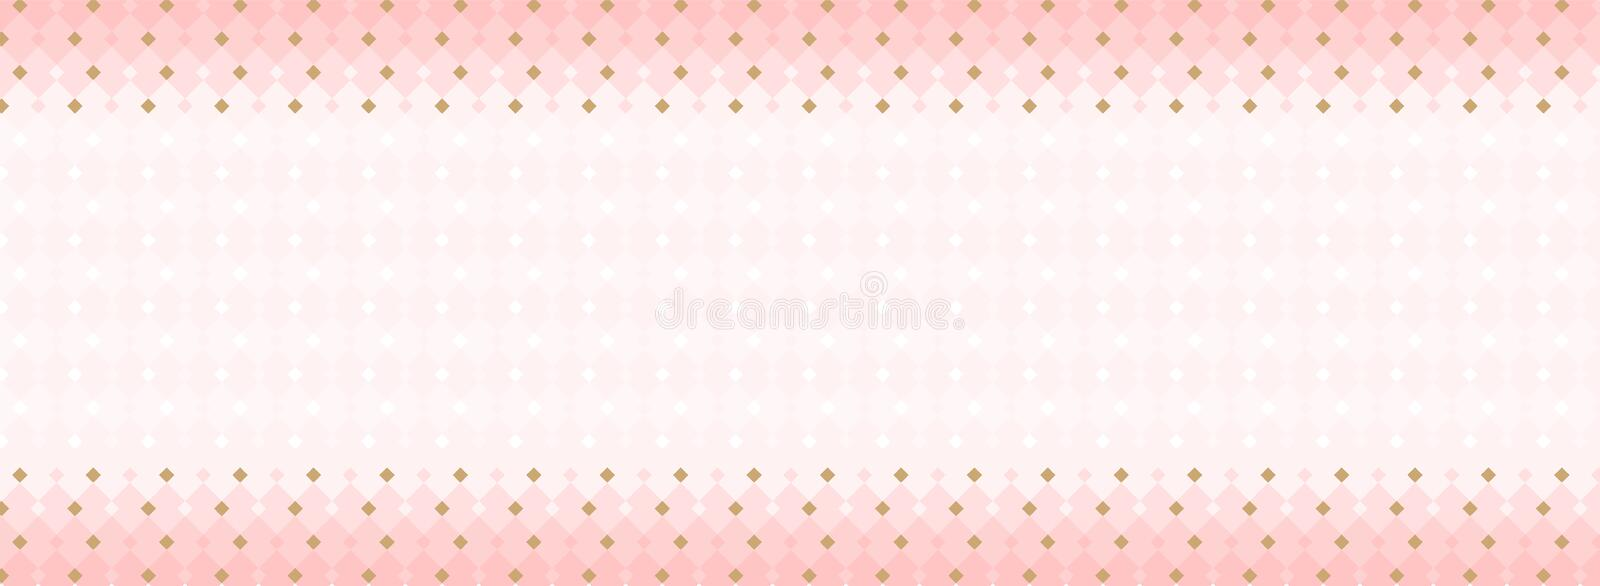 Cute abstract seamless pattern. Template for banner, business card, invitation little princess party. Girlish sweet pastel background. Trendy geometric wallpaper royalty free illustration